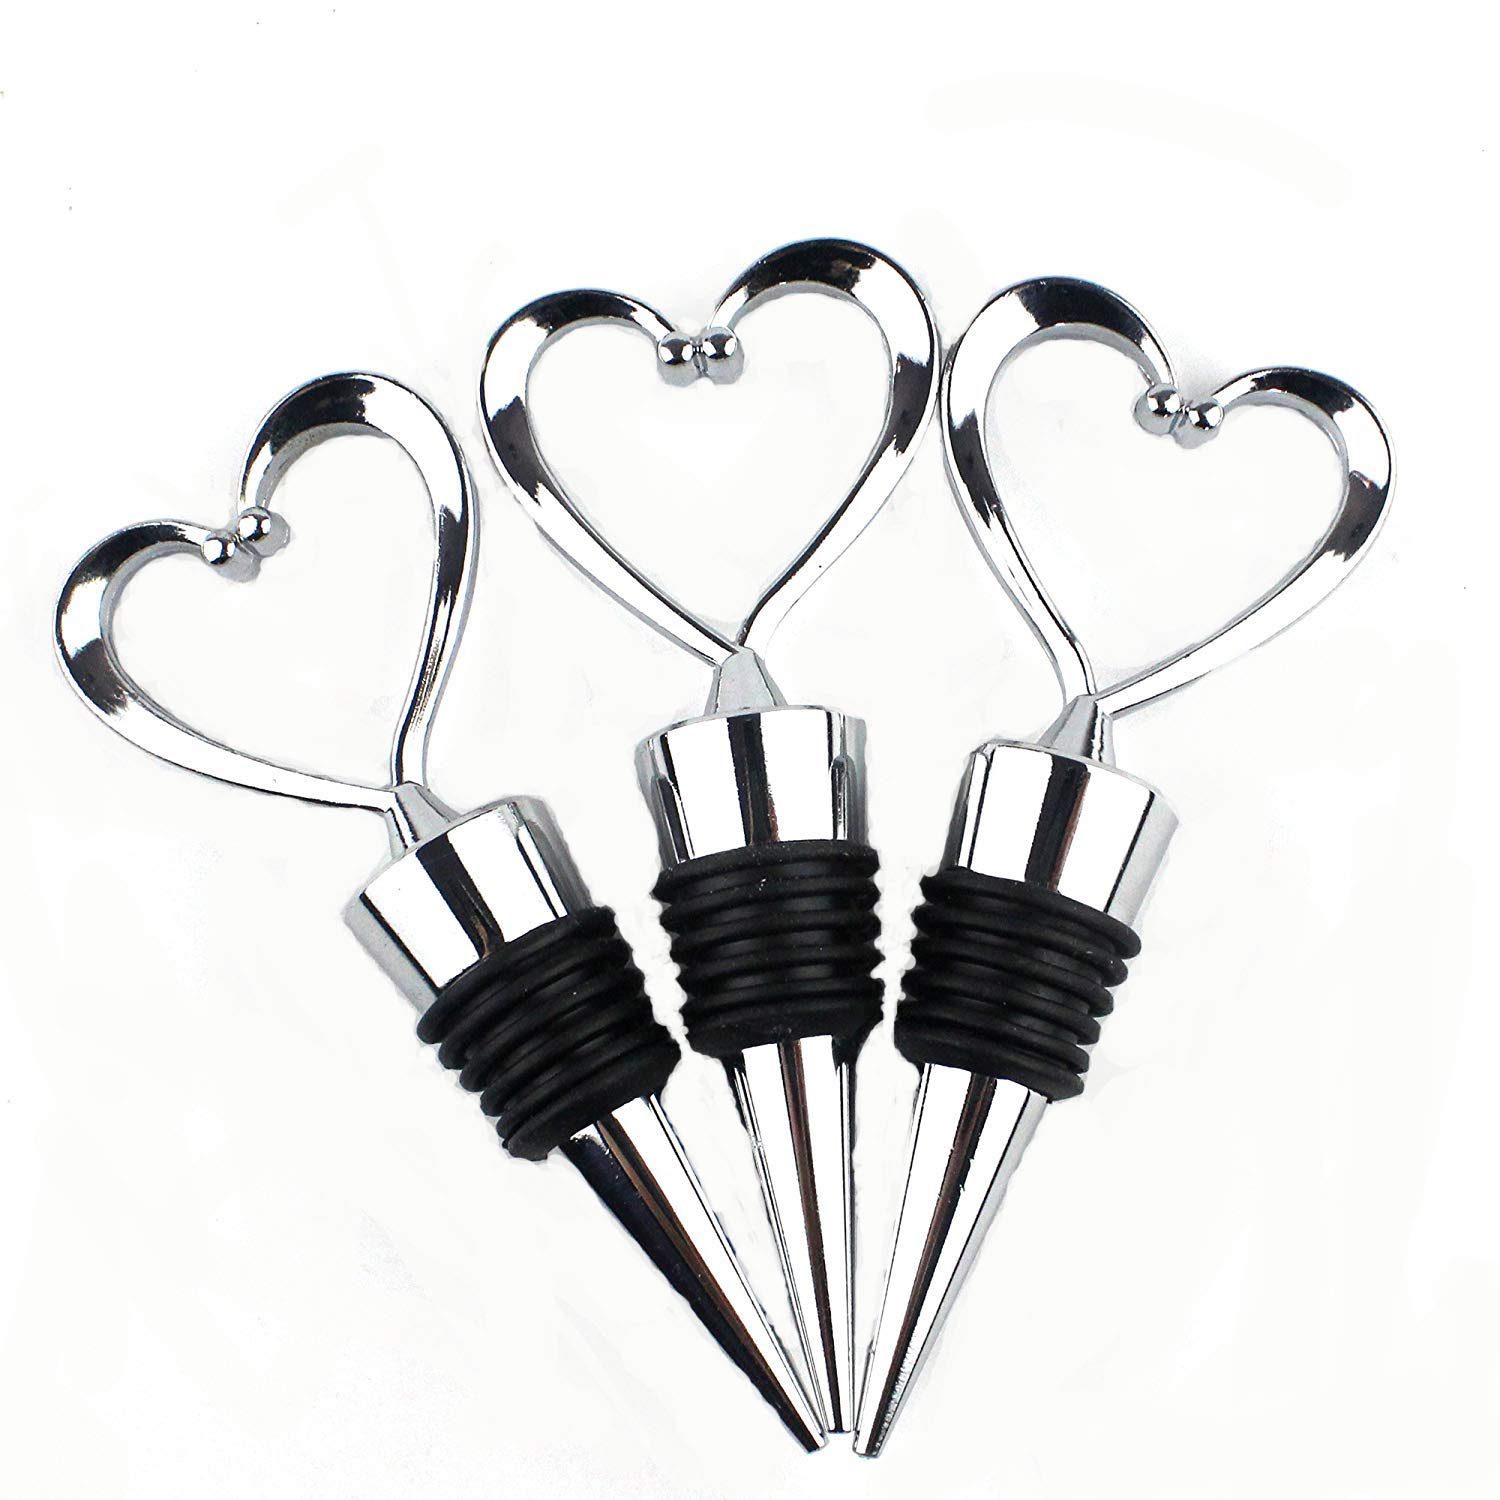 Lovelyou OTHER 11 Stainless Steel Love Design Heart Shape Wine and Beverage Bottle Stoppers (3) by Lovelyou (Image #4)